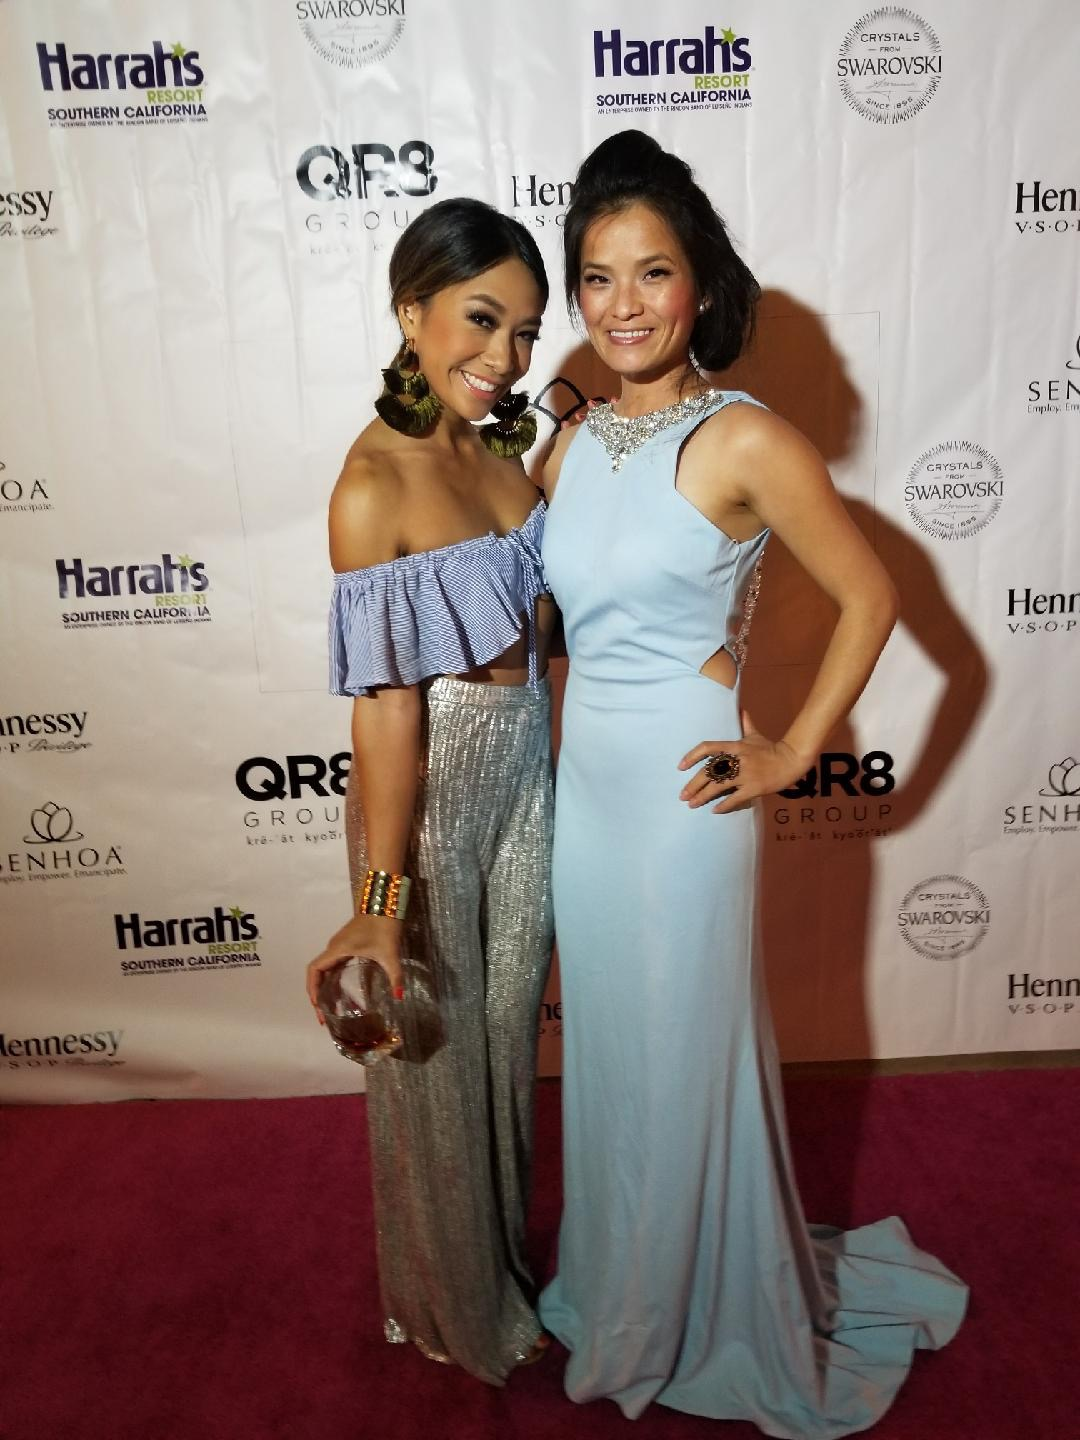 Sen Hoa Foundation  red carpet event advocating employment and emancipation of young girls and women in Cambodia exploited by human trafficking.